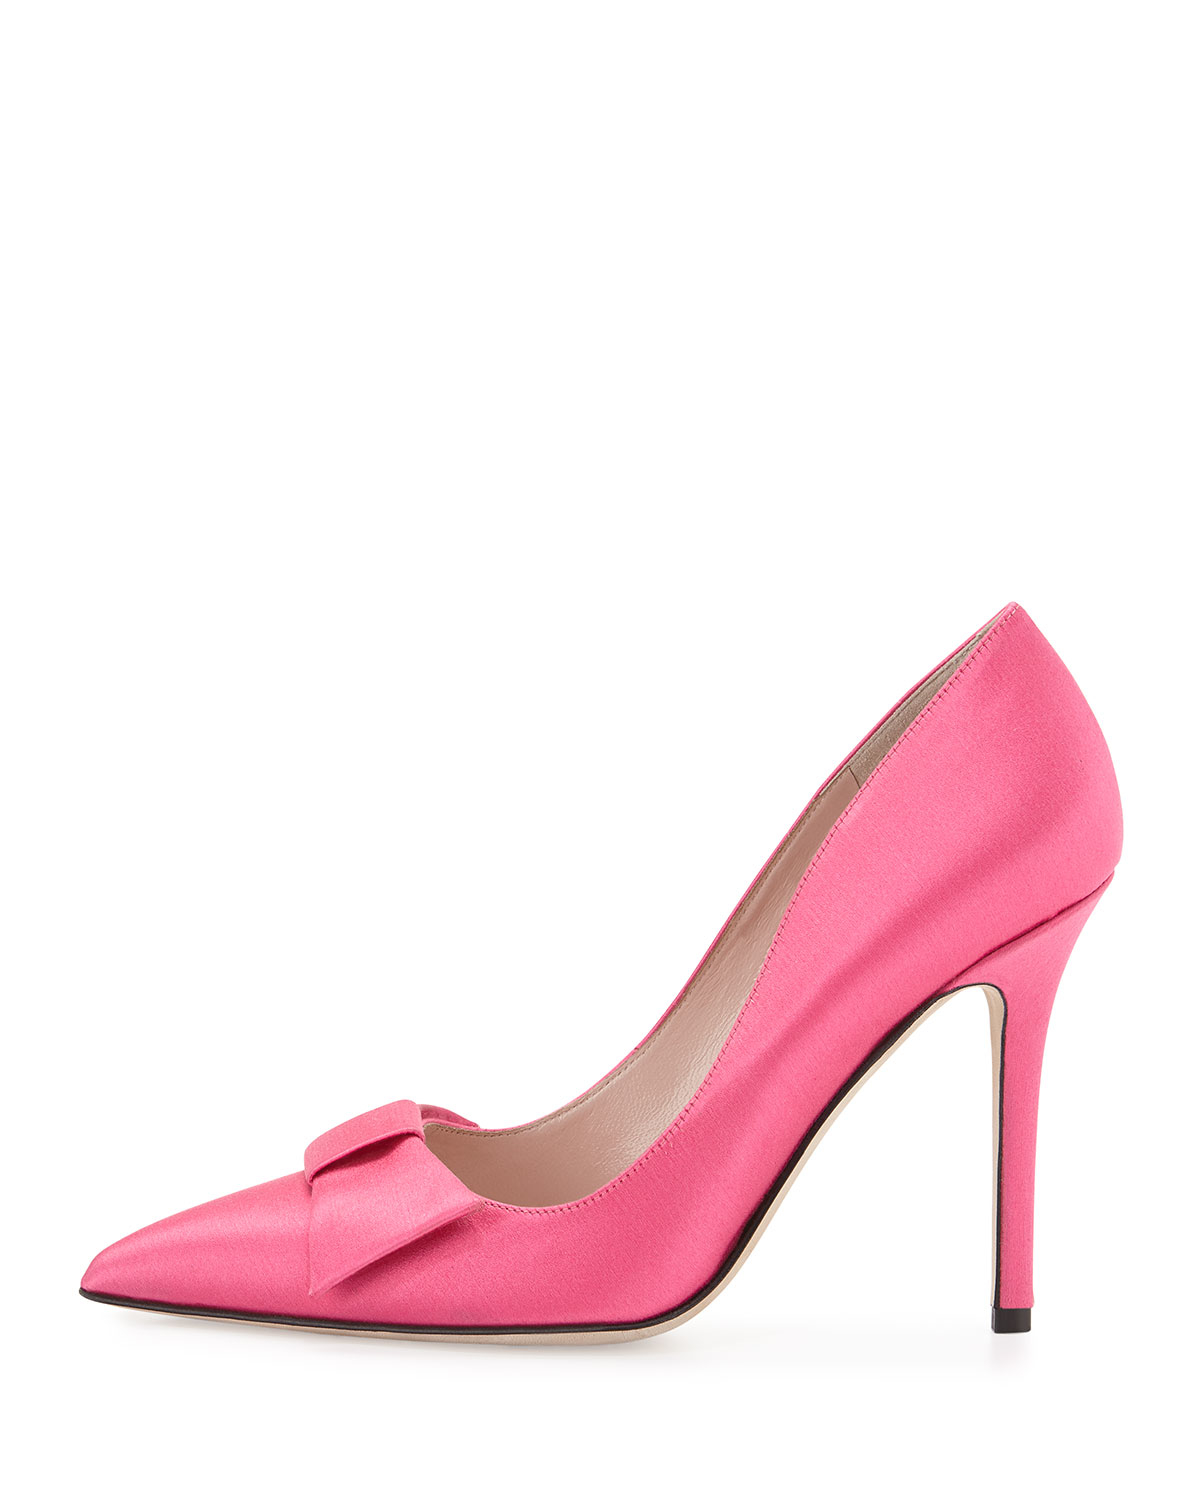 879bd6d2a68 Lyst - Kate Spade Layla Satin Bow Pumps in Pink